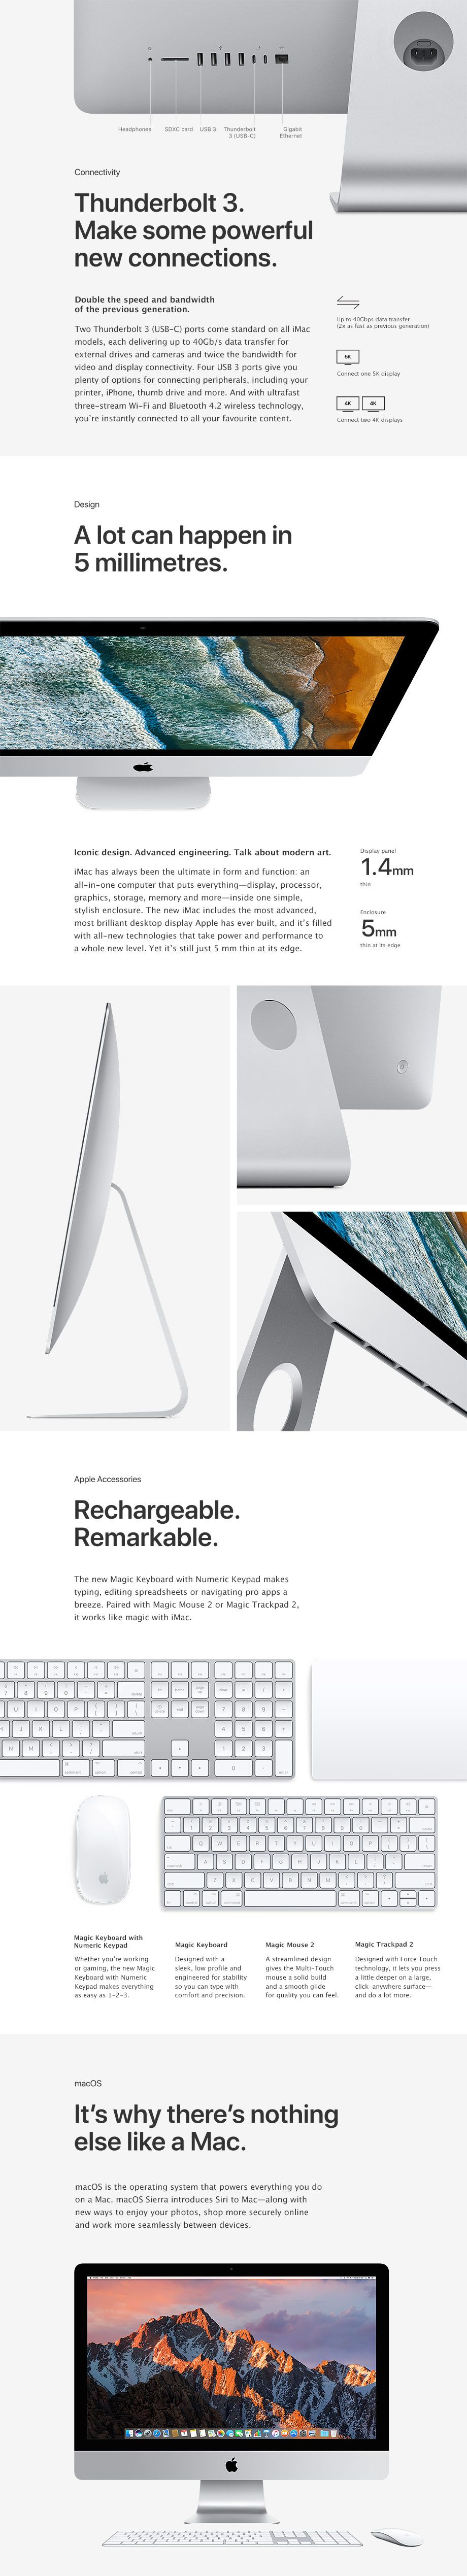 Connectivity, Design, Accessories, macOS